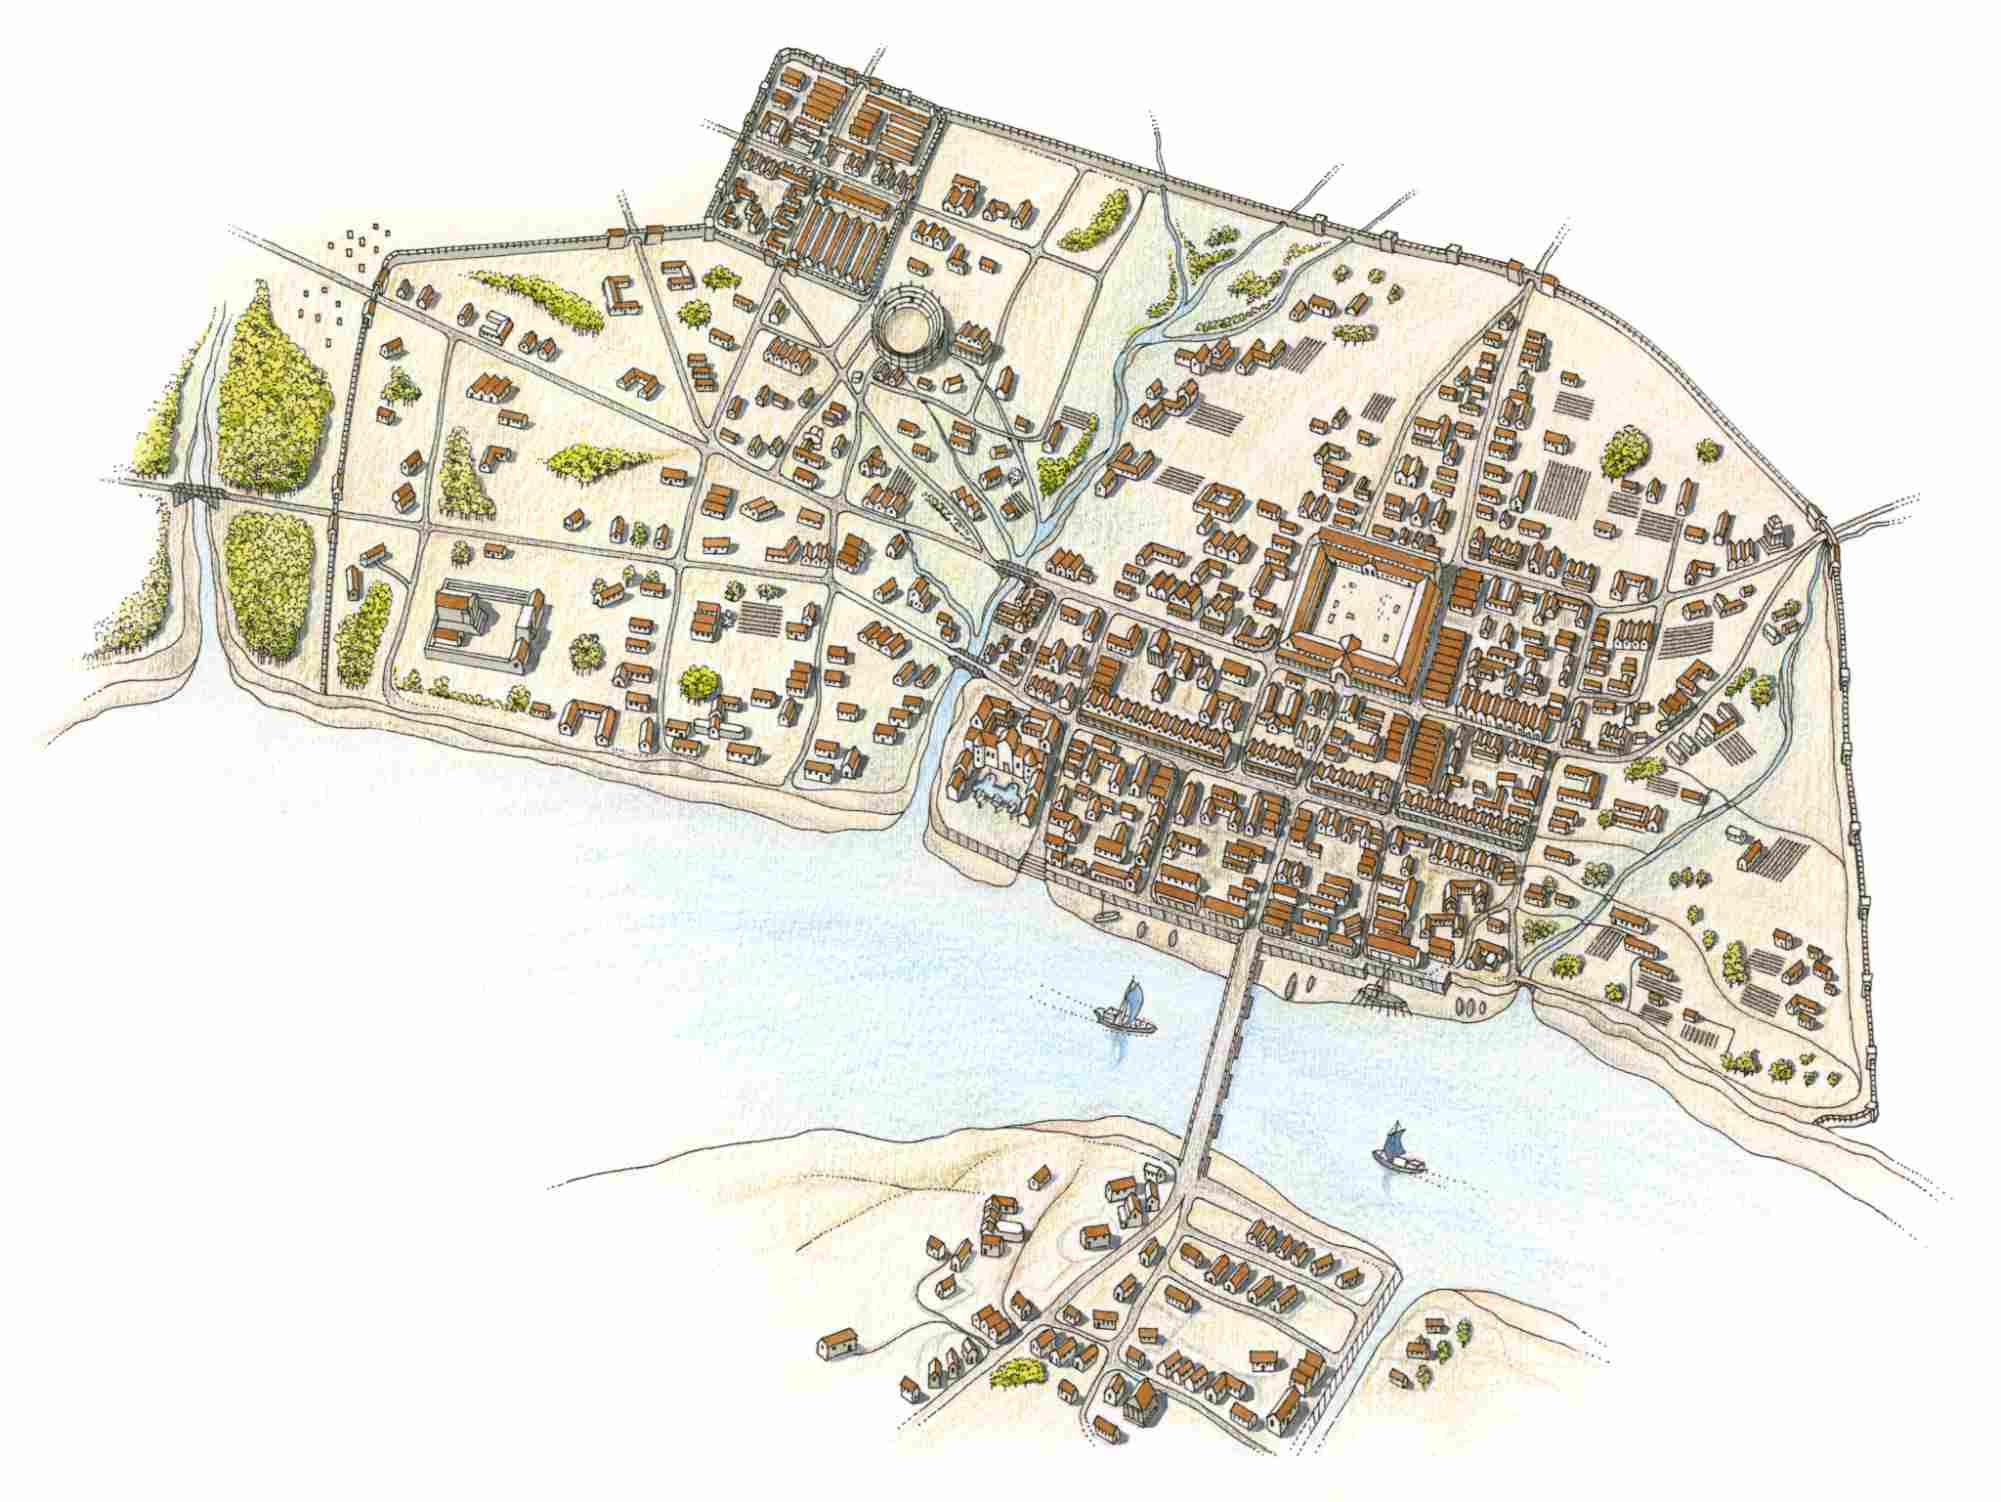 Illustration of early walled Roman settlement of Londonium on banks of Thames River